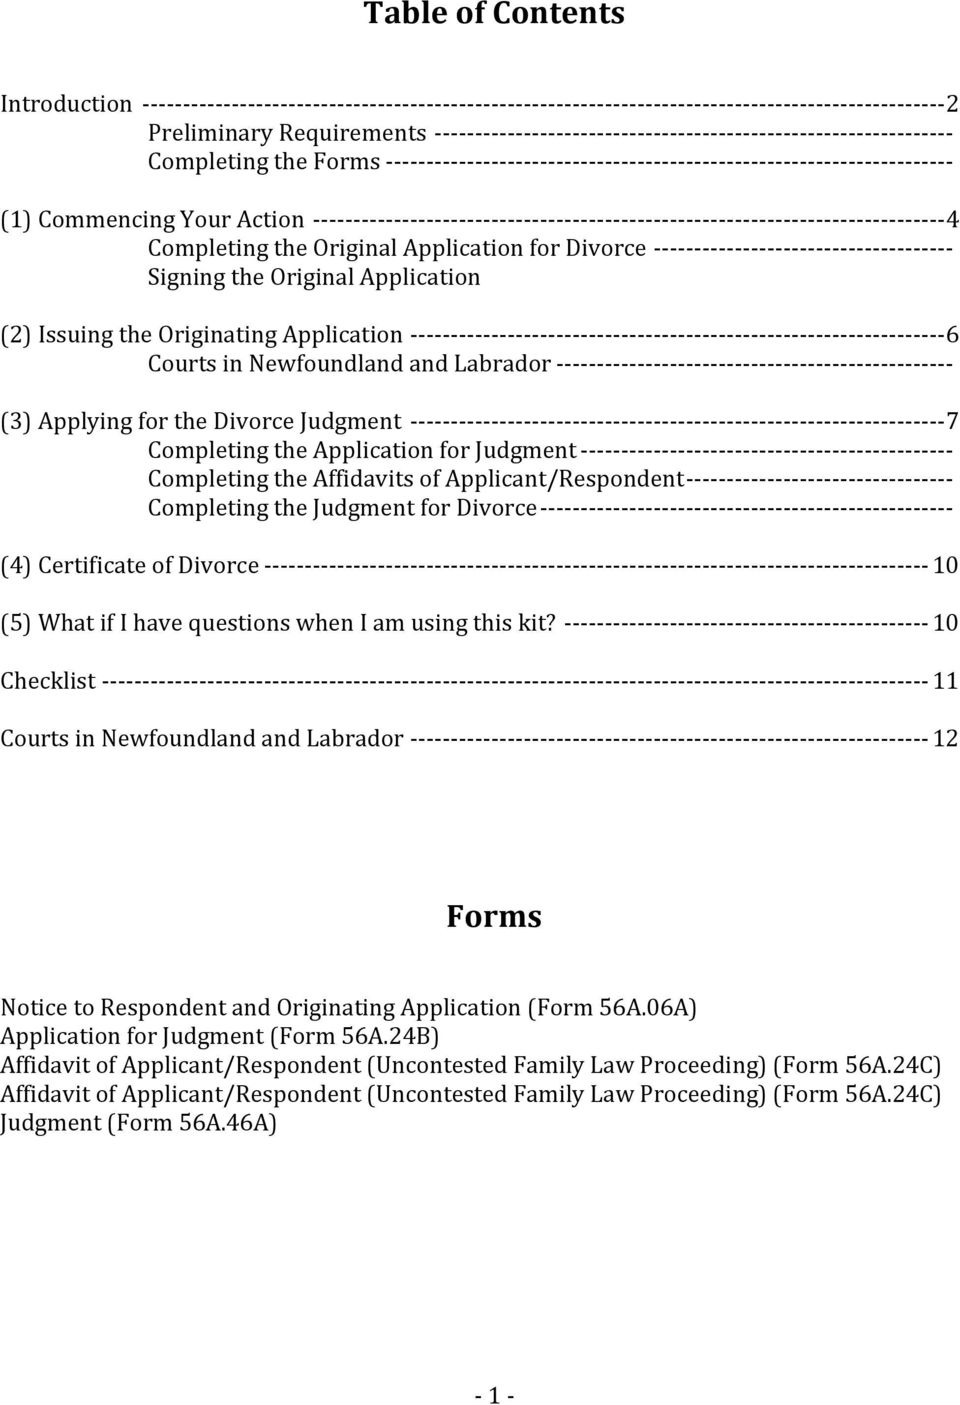 Joint or co applicant uncontested divorce self help kit pdf 3 introduction a divorce is the legal and formal ending of a marriage solutioingenieria Choice Image